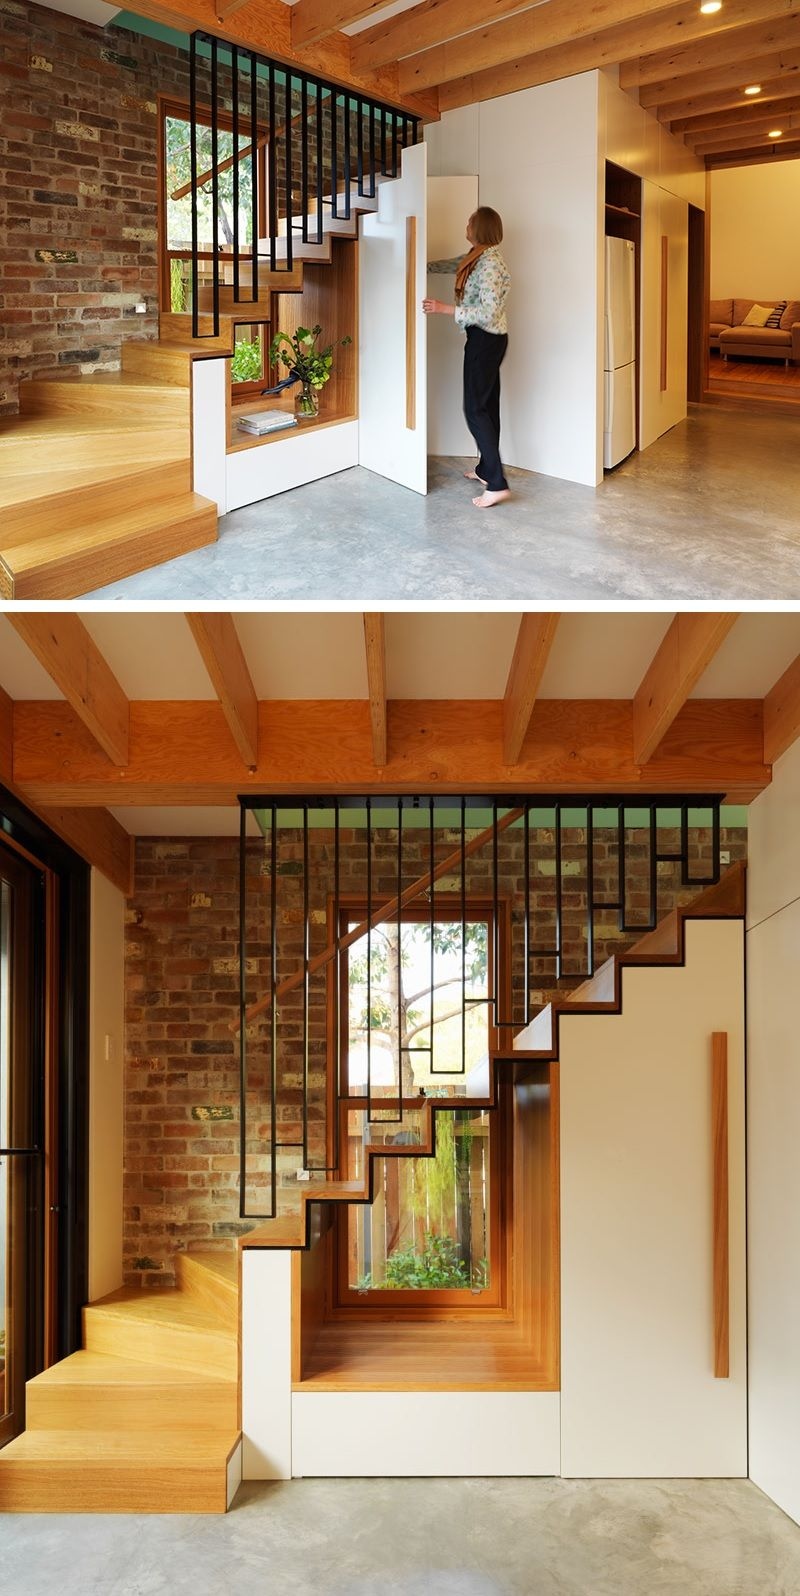 1558006671 268 10 cool design details that will make your house unique - 10 Cool Design Details That Will Make Your House Unique